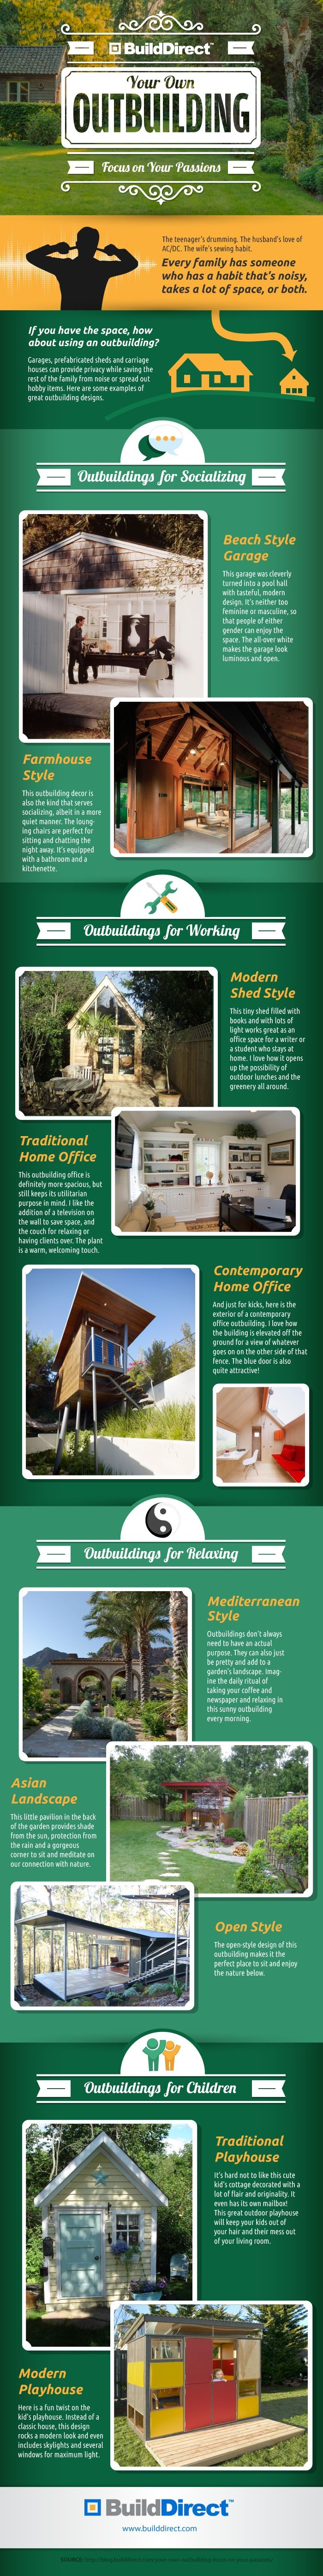 Have you heard of an outbuilding? Tips to create a warm and relaxing space detached from your home.